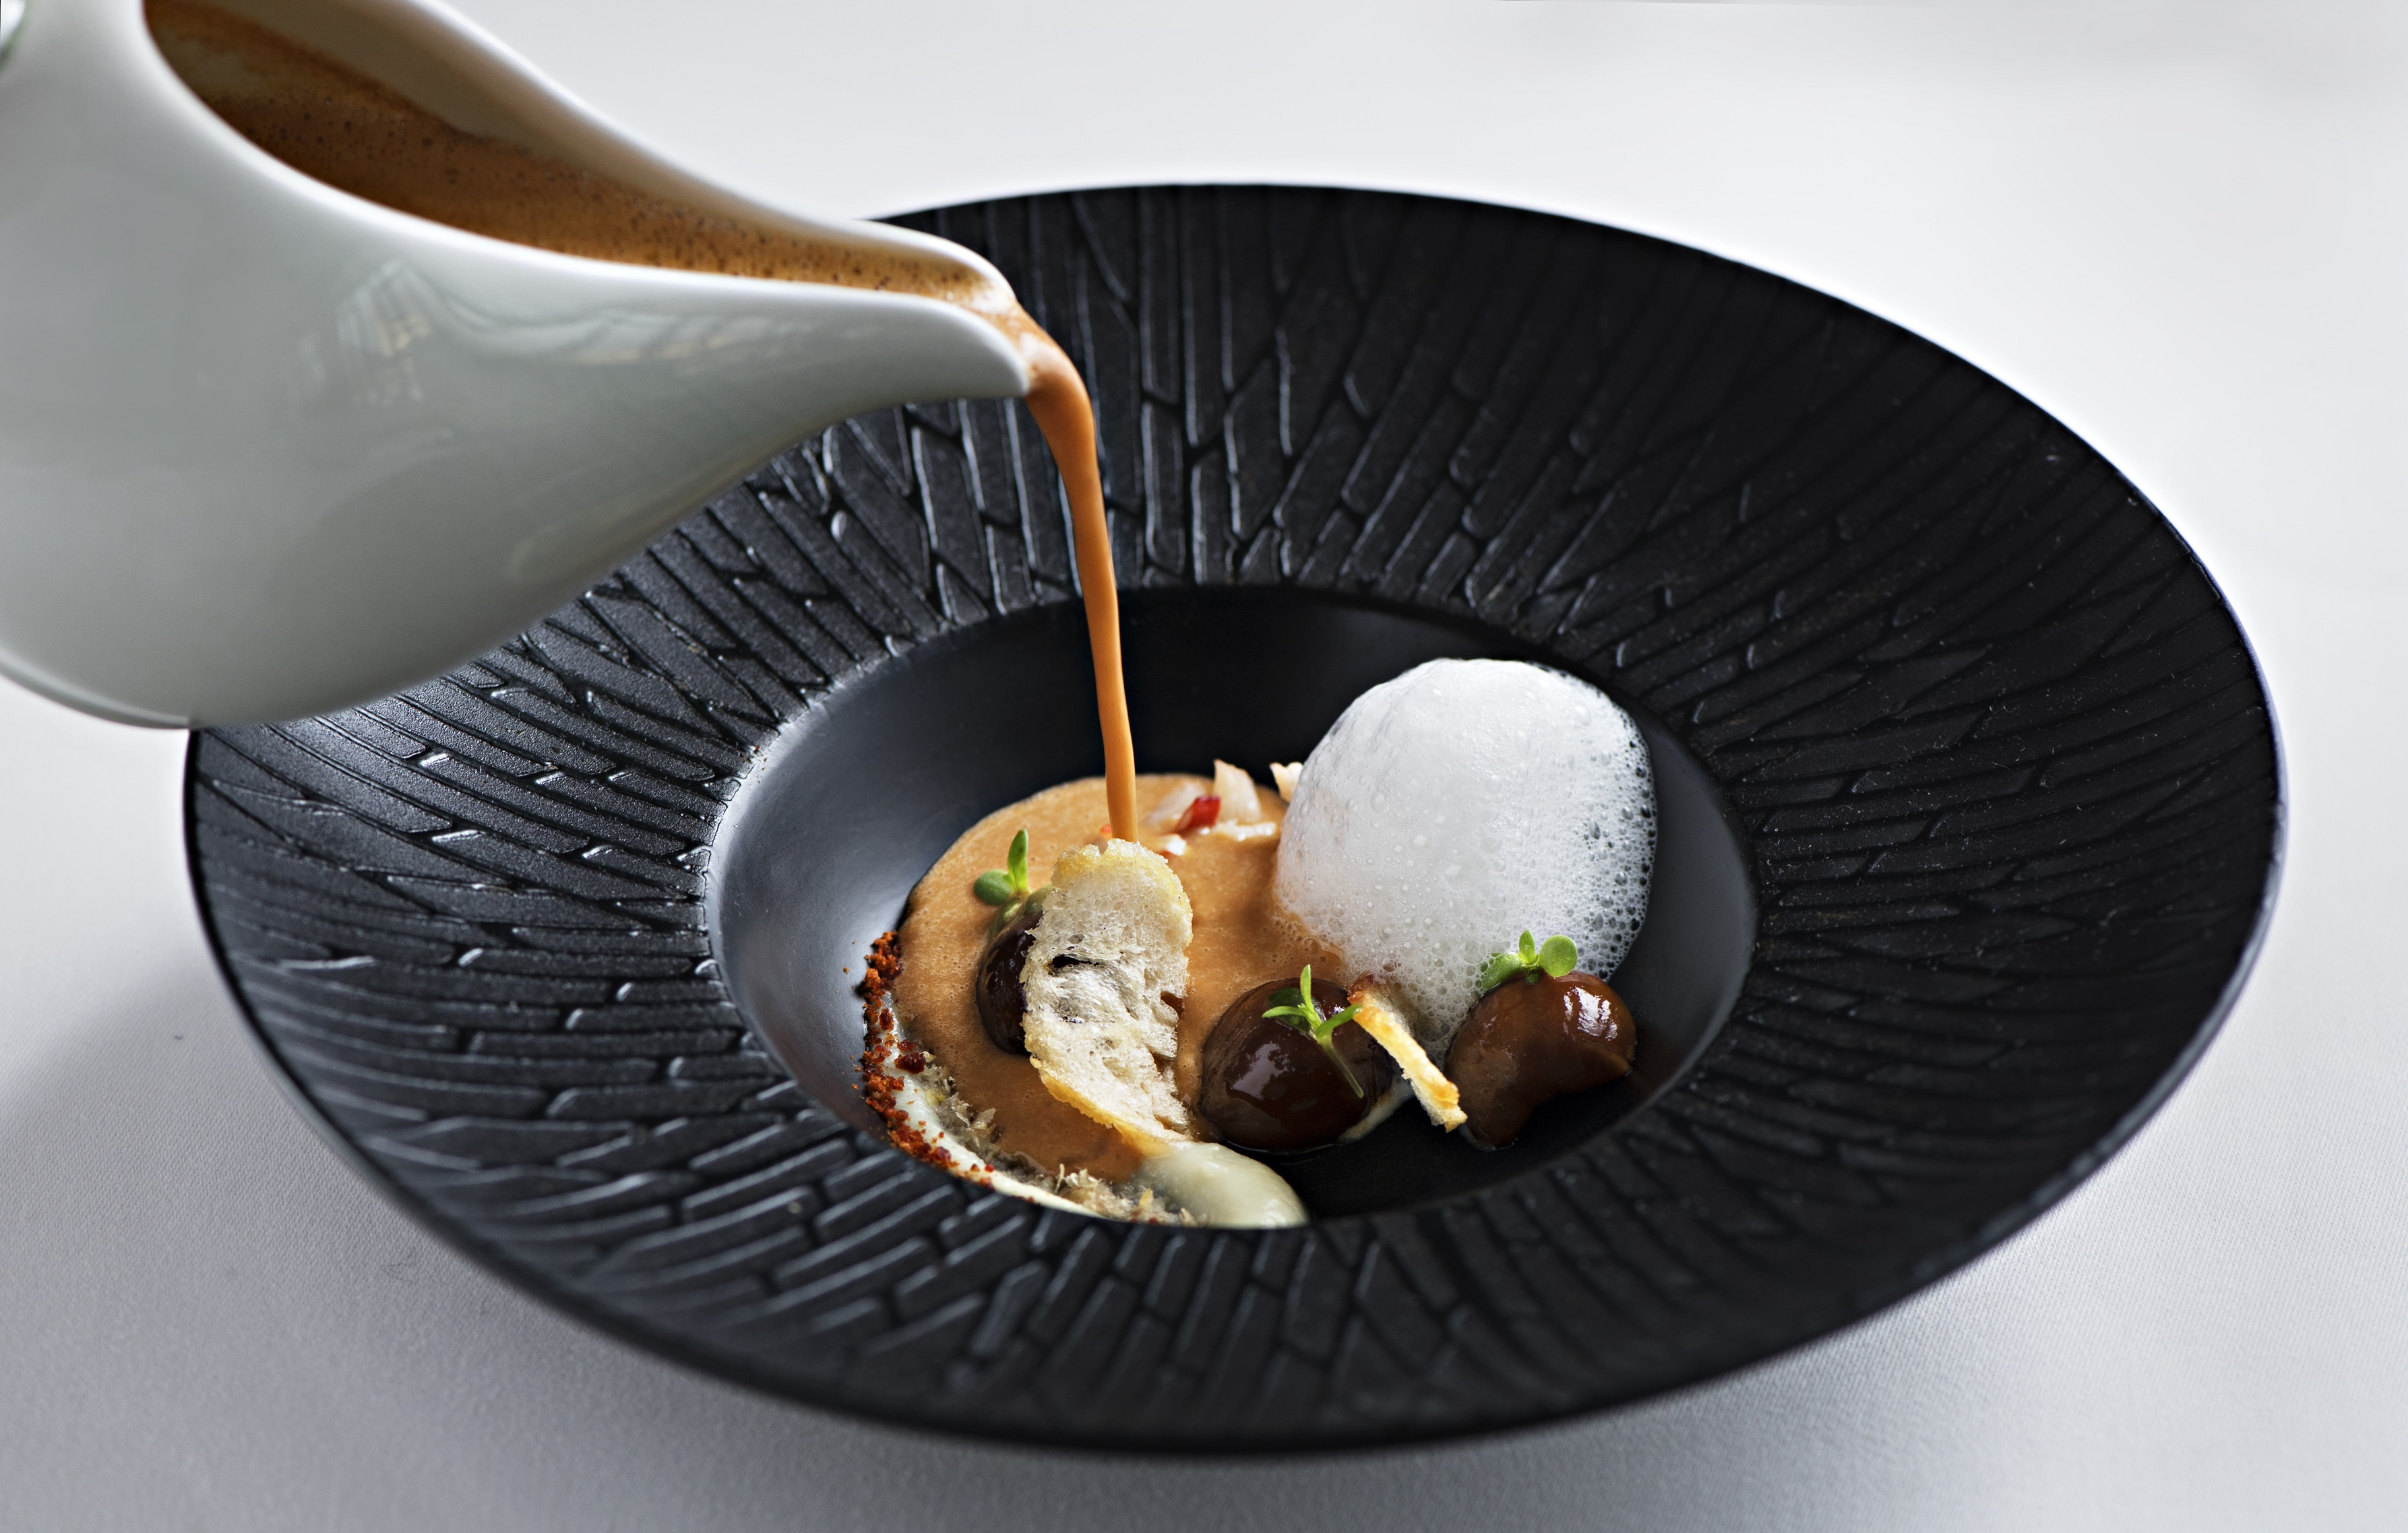 Lobster and chestnut bisque with sweet garlic emulsion and savory -ซุปล็อบสเตอร์บิสค์